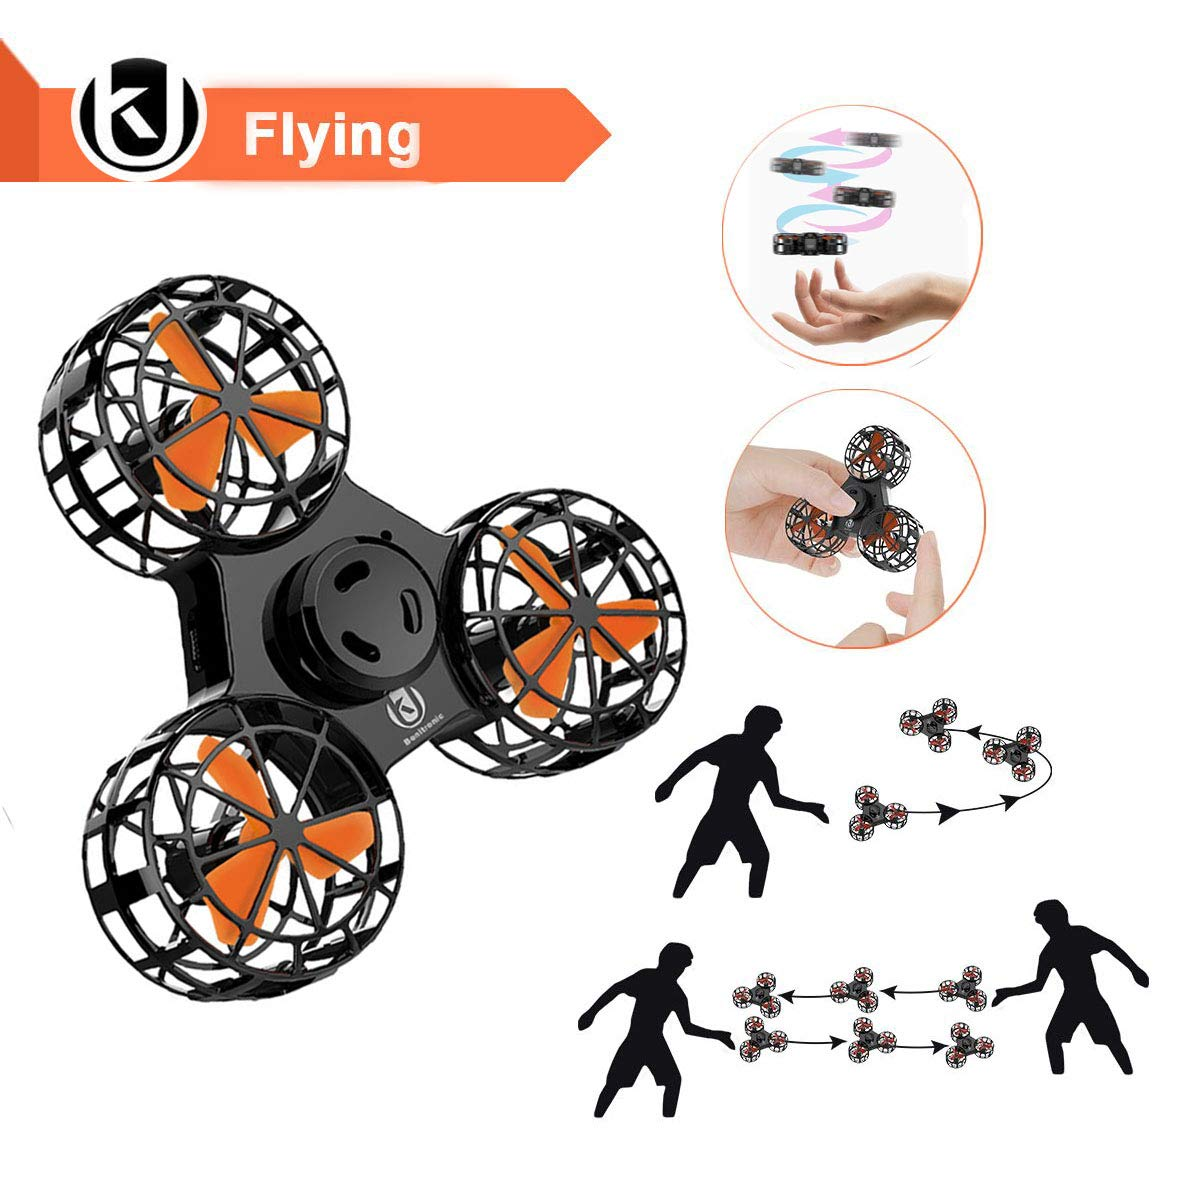 Bonitronic Flying Ball Toys, Flying Fidget Spinner USB Rechargeable, Interactive Mini Drone Indoor Outdoor, Flying Toys for Boys Girls, Kids Adults by Bonitronic